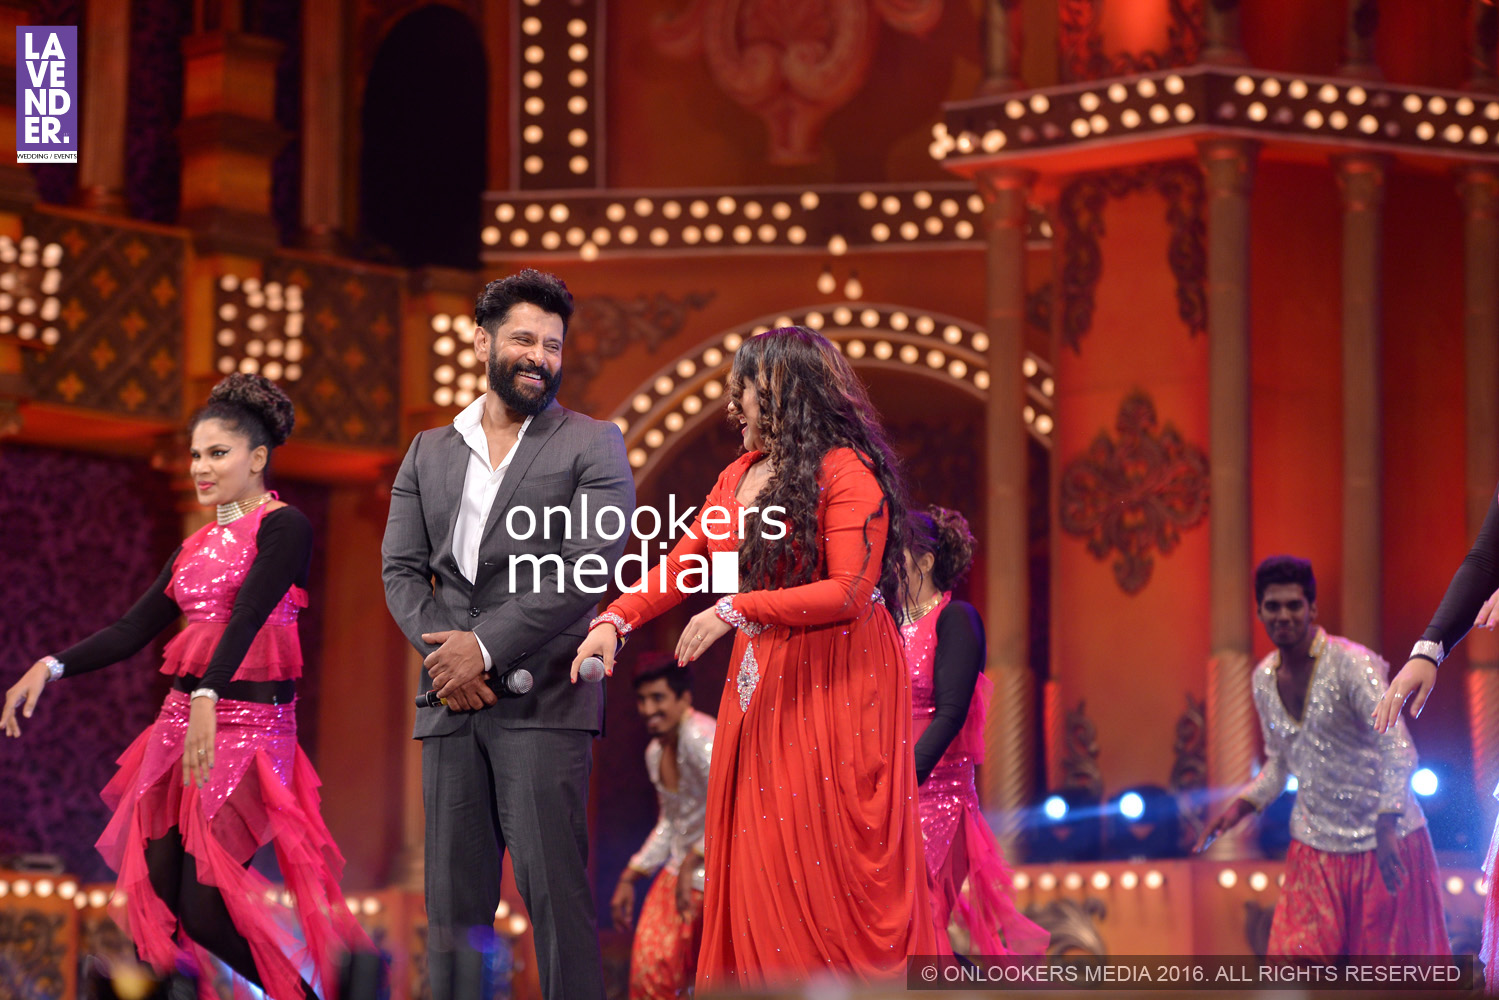 http://onlookersmedia.in/wp-content/uploads/2016/02/Vikram-at-Asianet-Film-Awards-2016-41.jpg